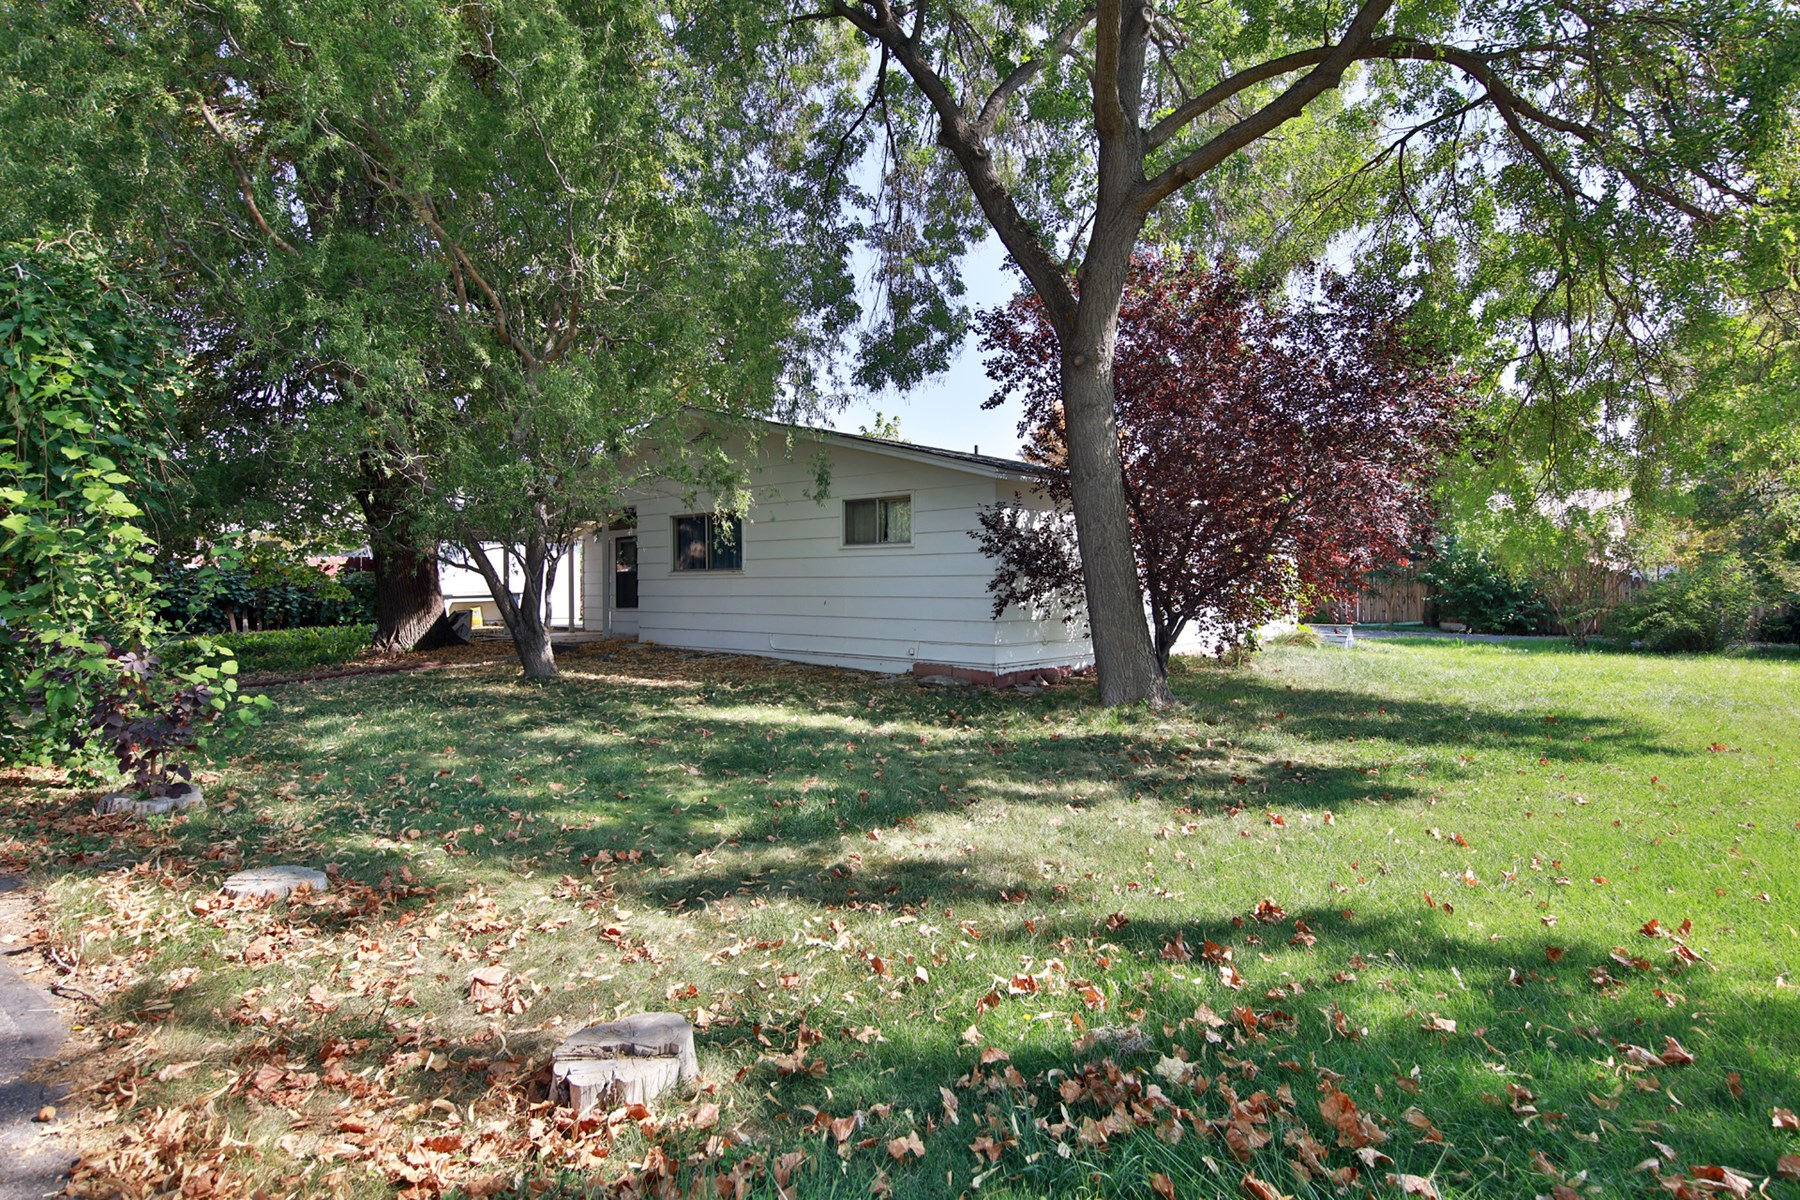 Home for Sale in Grand Junction Colorado